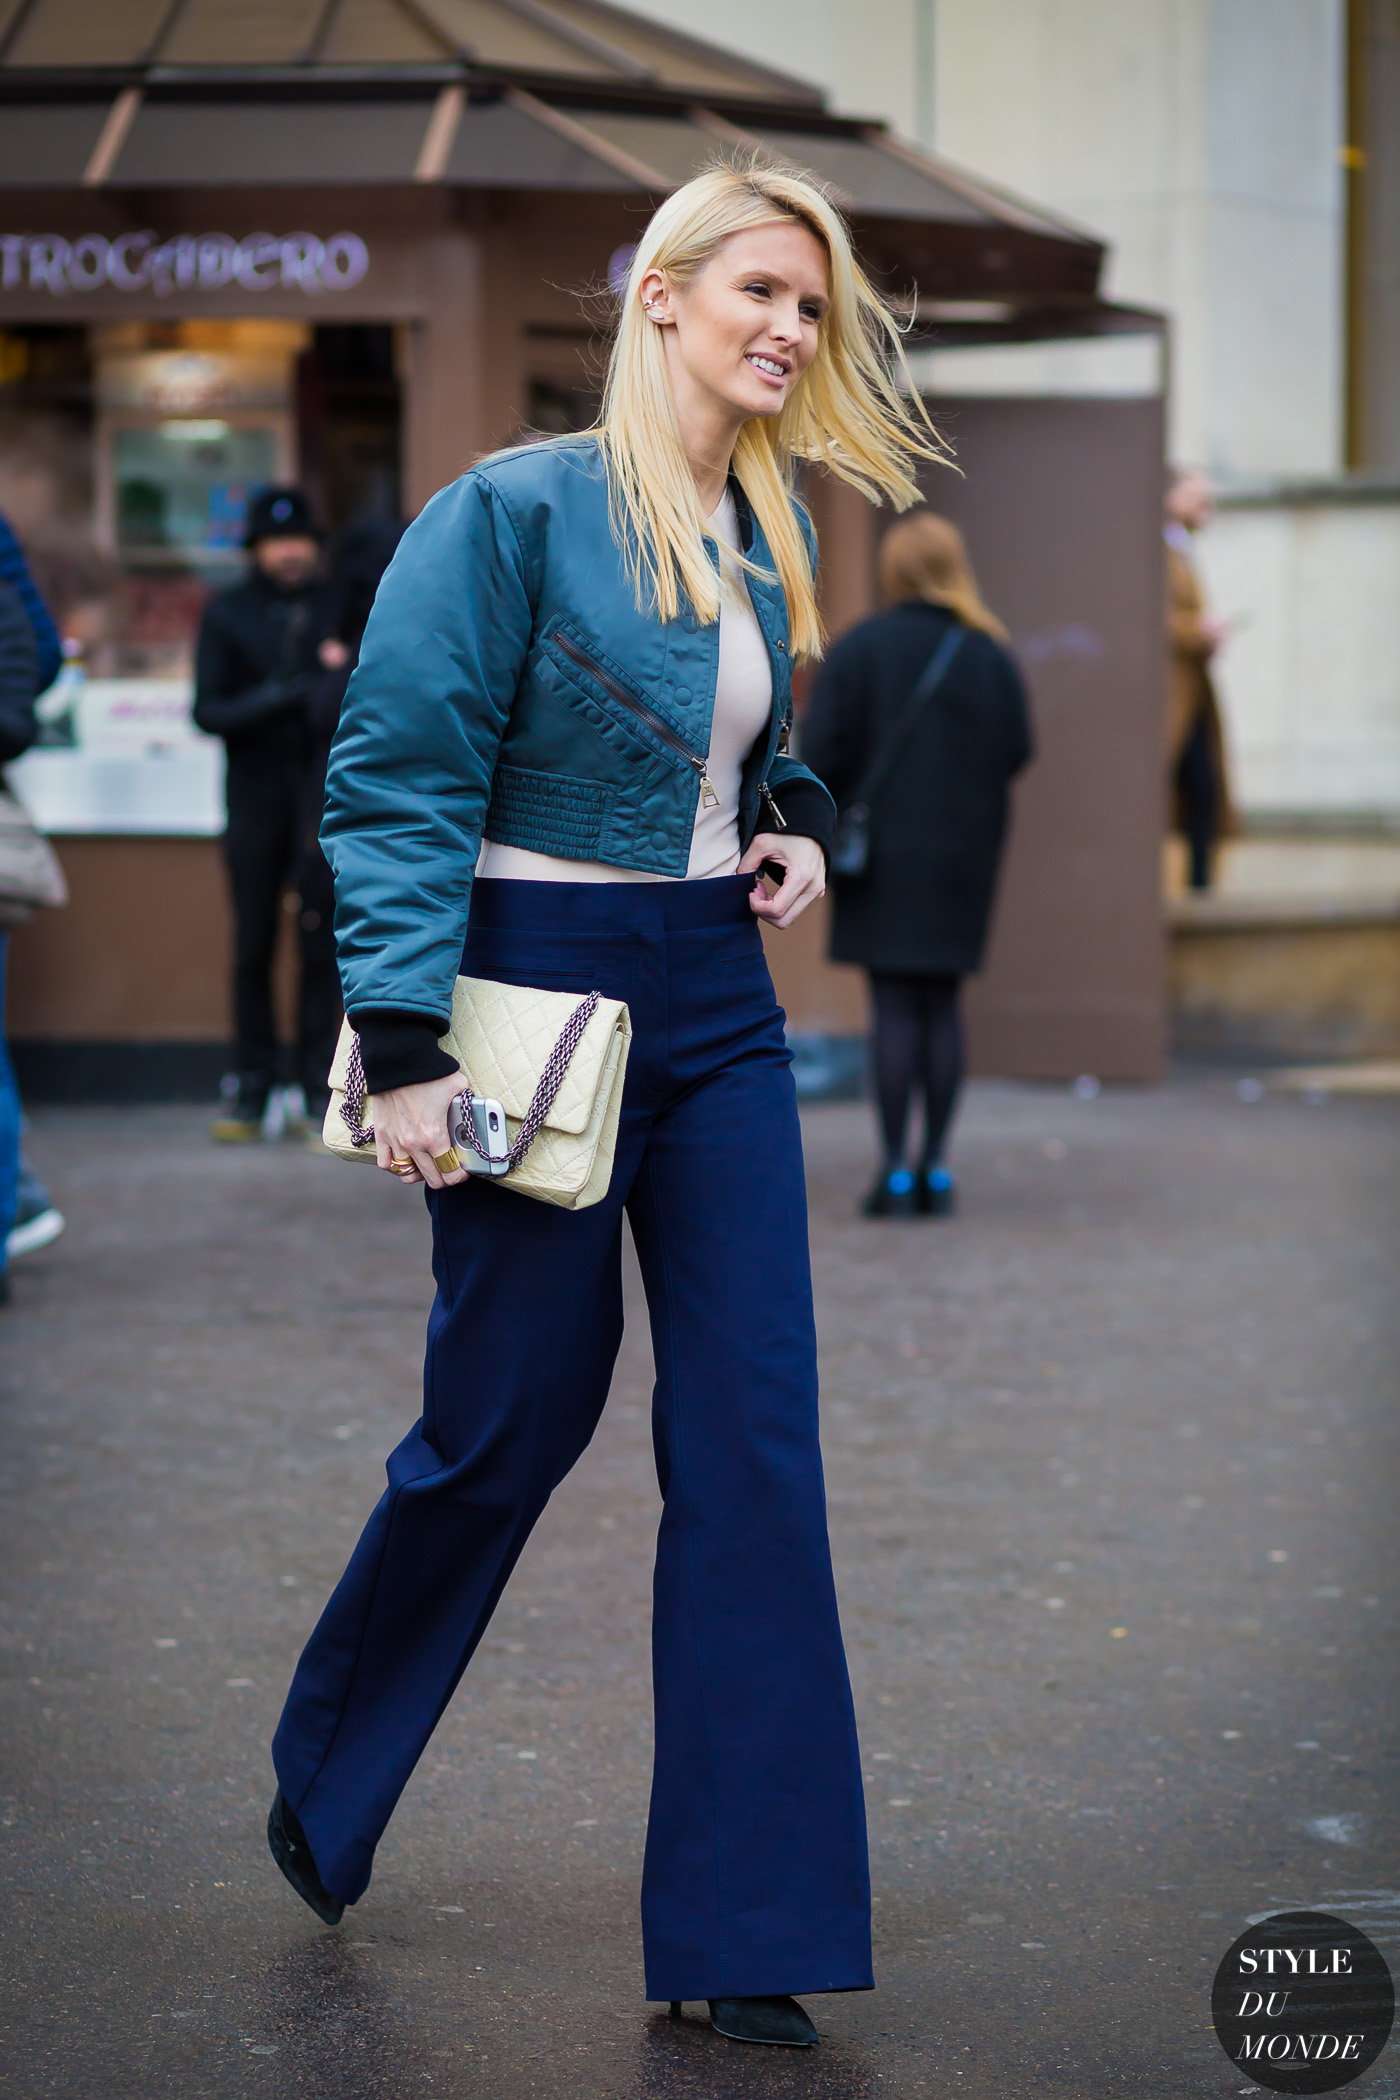 Kate Davidson Hudson Street Style Street Fashion Streetsnaps by STYLEDUMONDE Street Style Fashion Photography